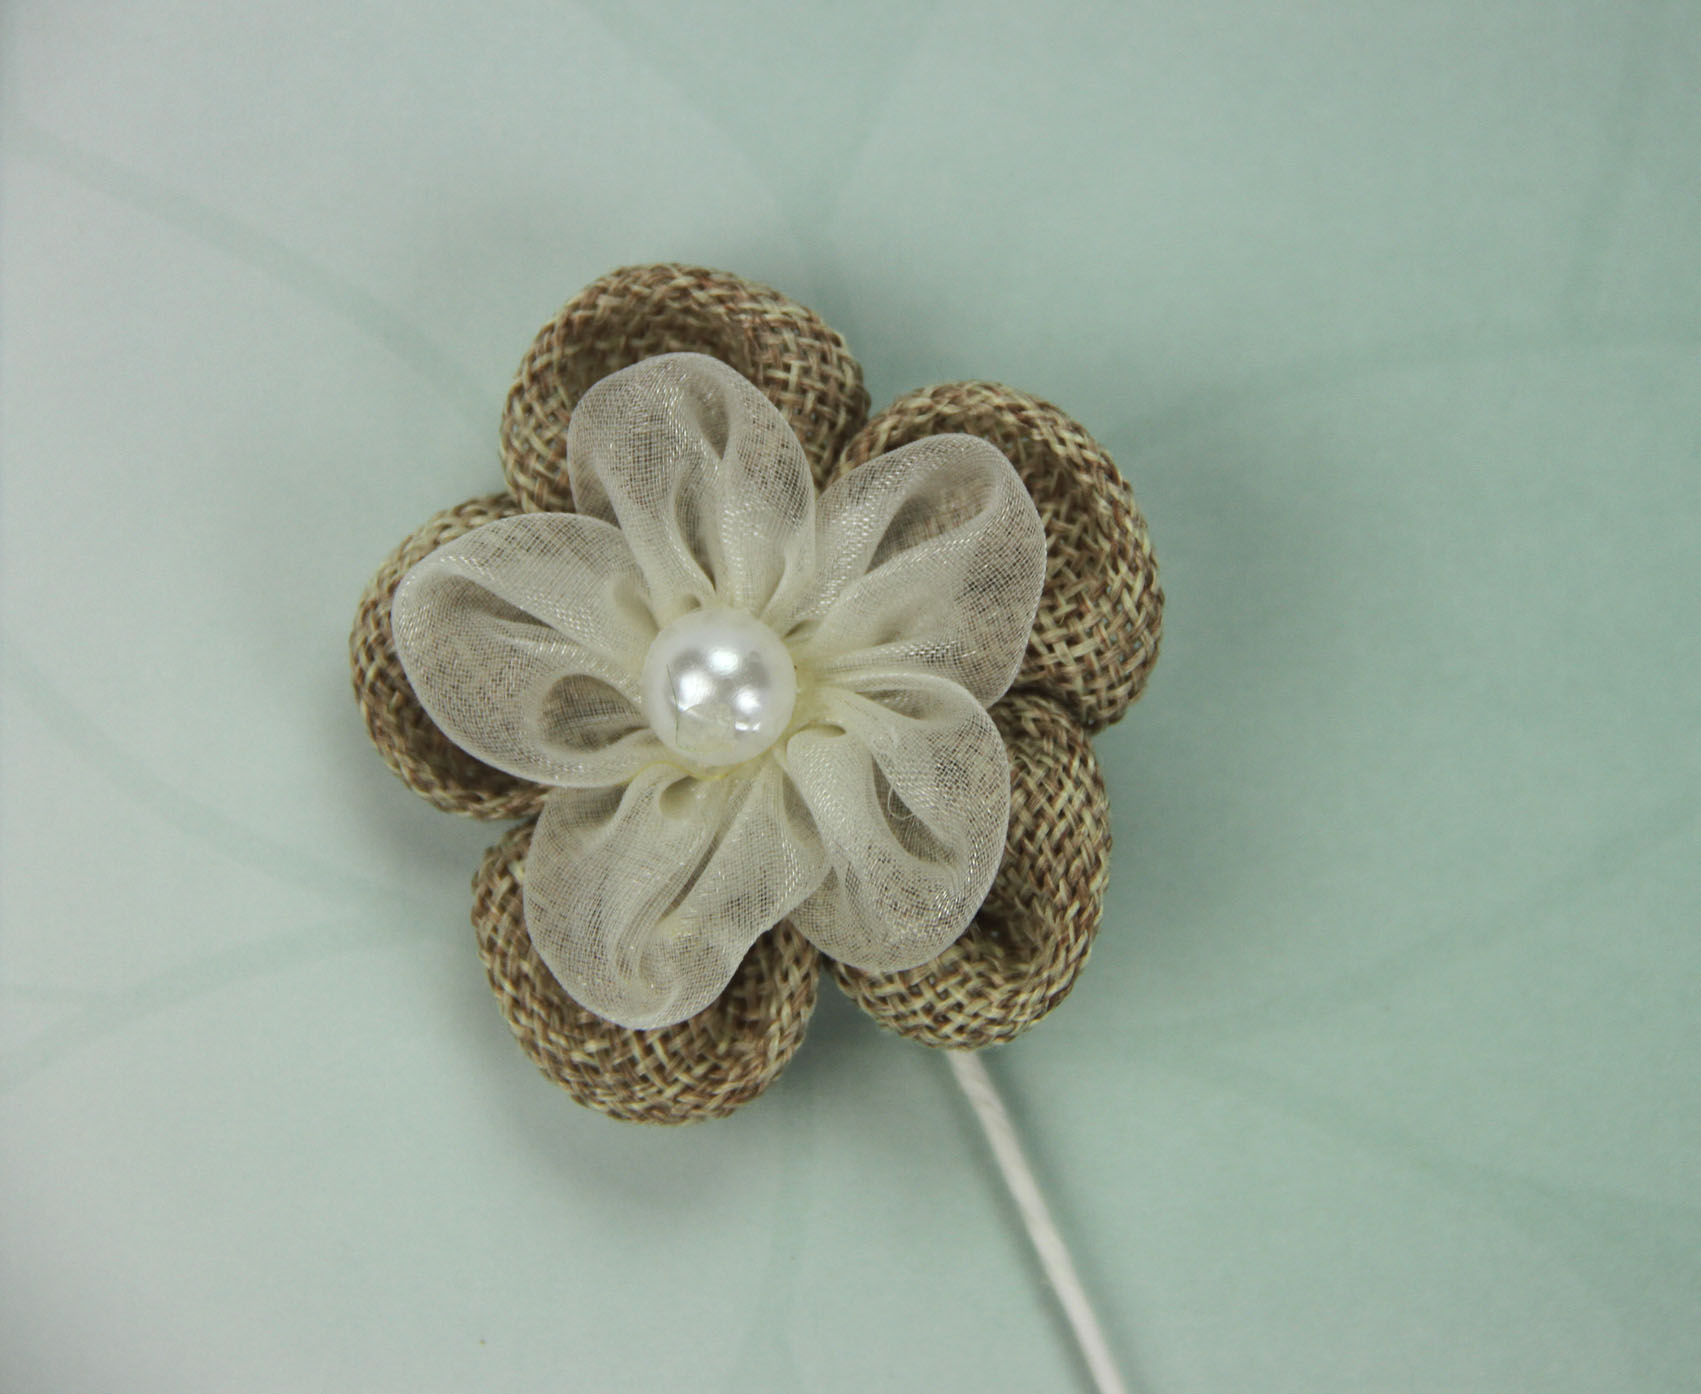 **NEW** 5cm Burlap/Organza Daisy with Pearl 12 pcs